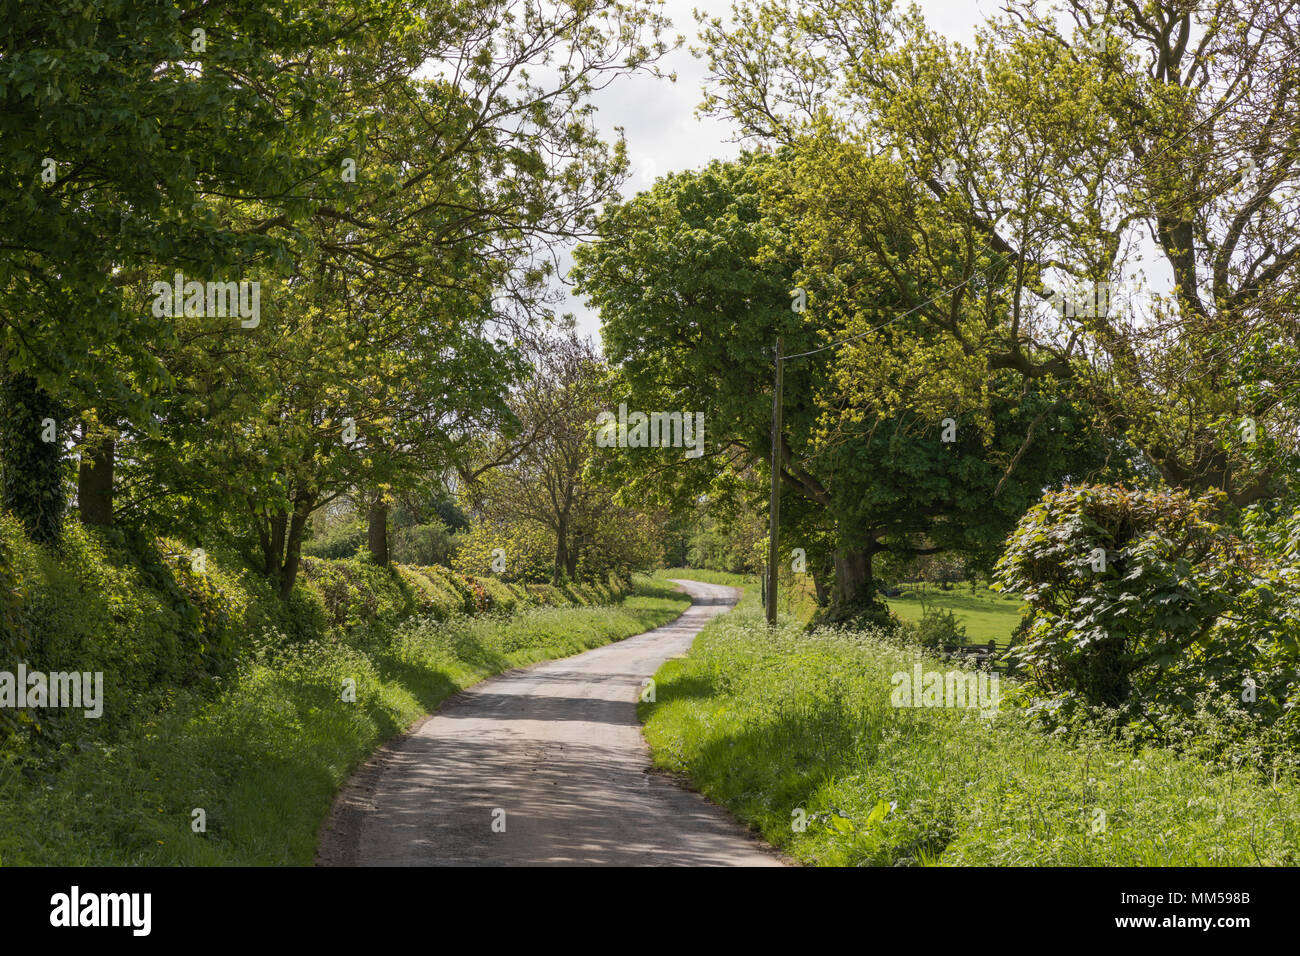 A narrow country lane winds out of sight, between green verges, hedges and trees. - Stock Image